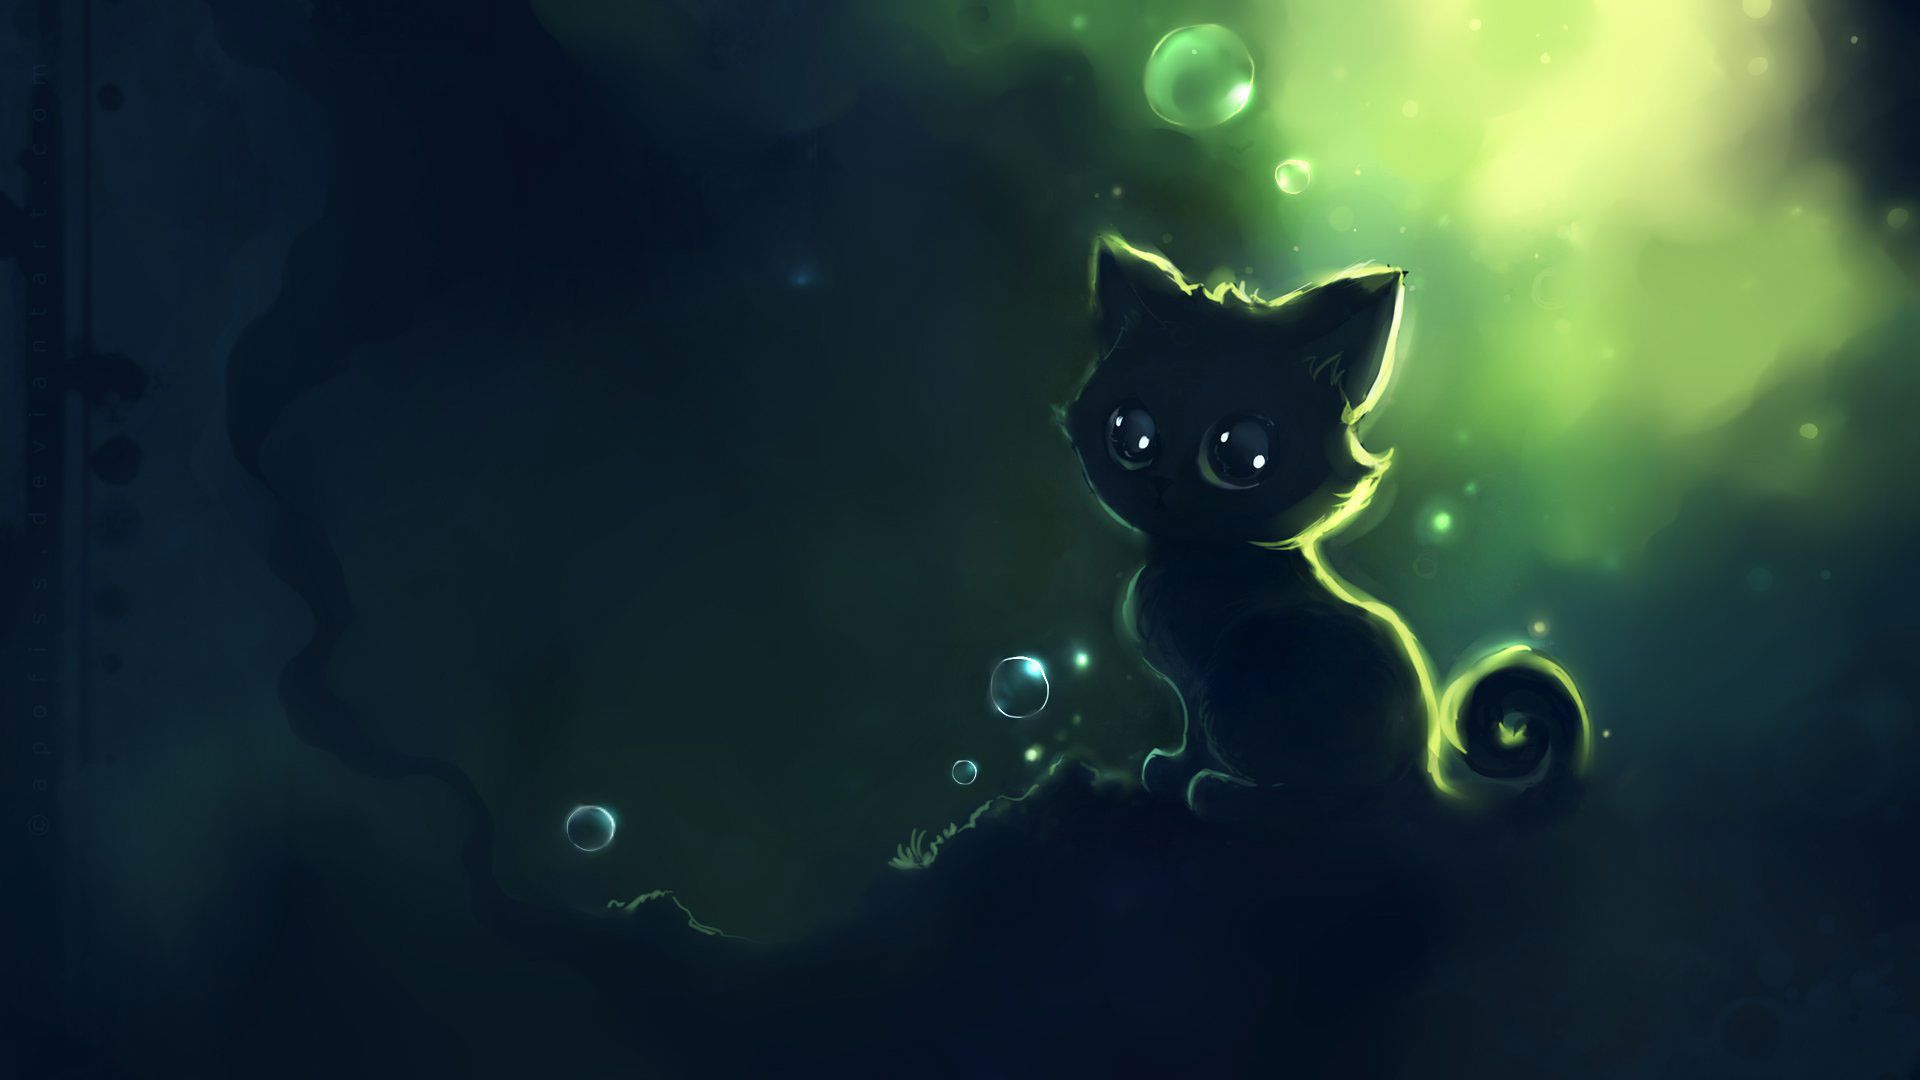 1920x1080 Cartoon Wallpapers Images Hd 1080p Cute Anime Cat Cat Art Cat Wallpaper